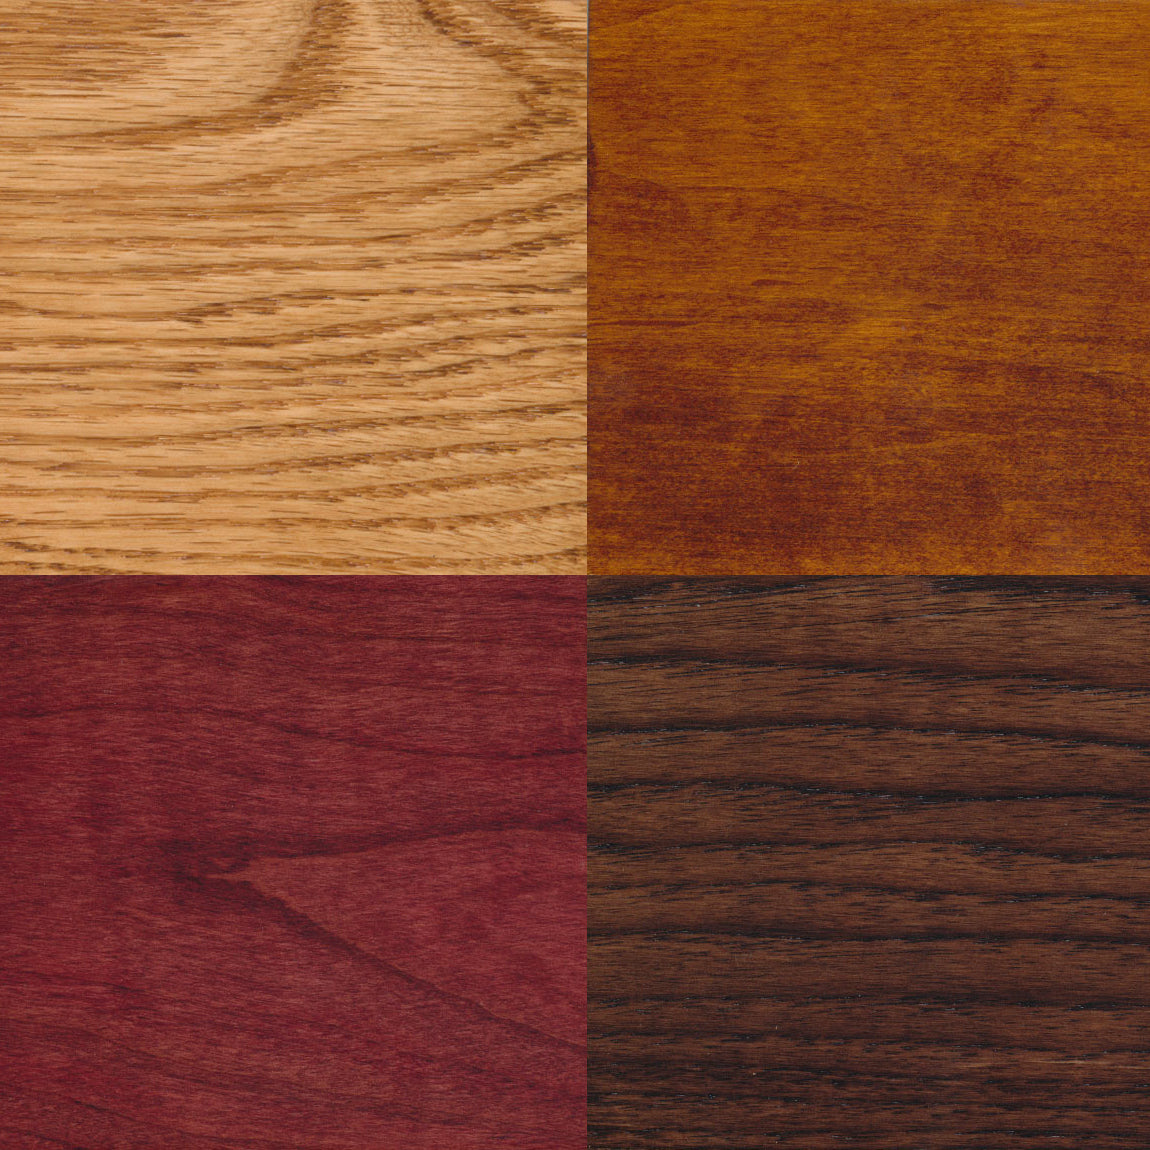 Hardwood Samples for our Wood Furniture